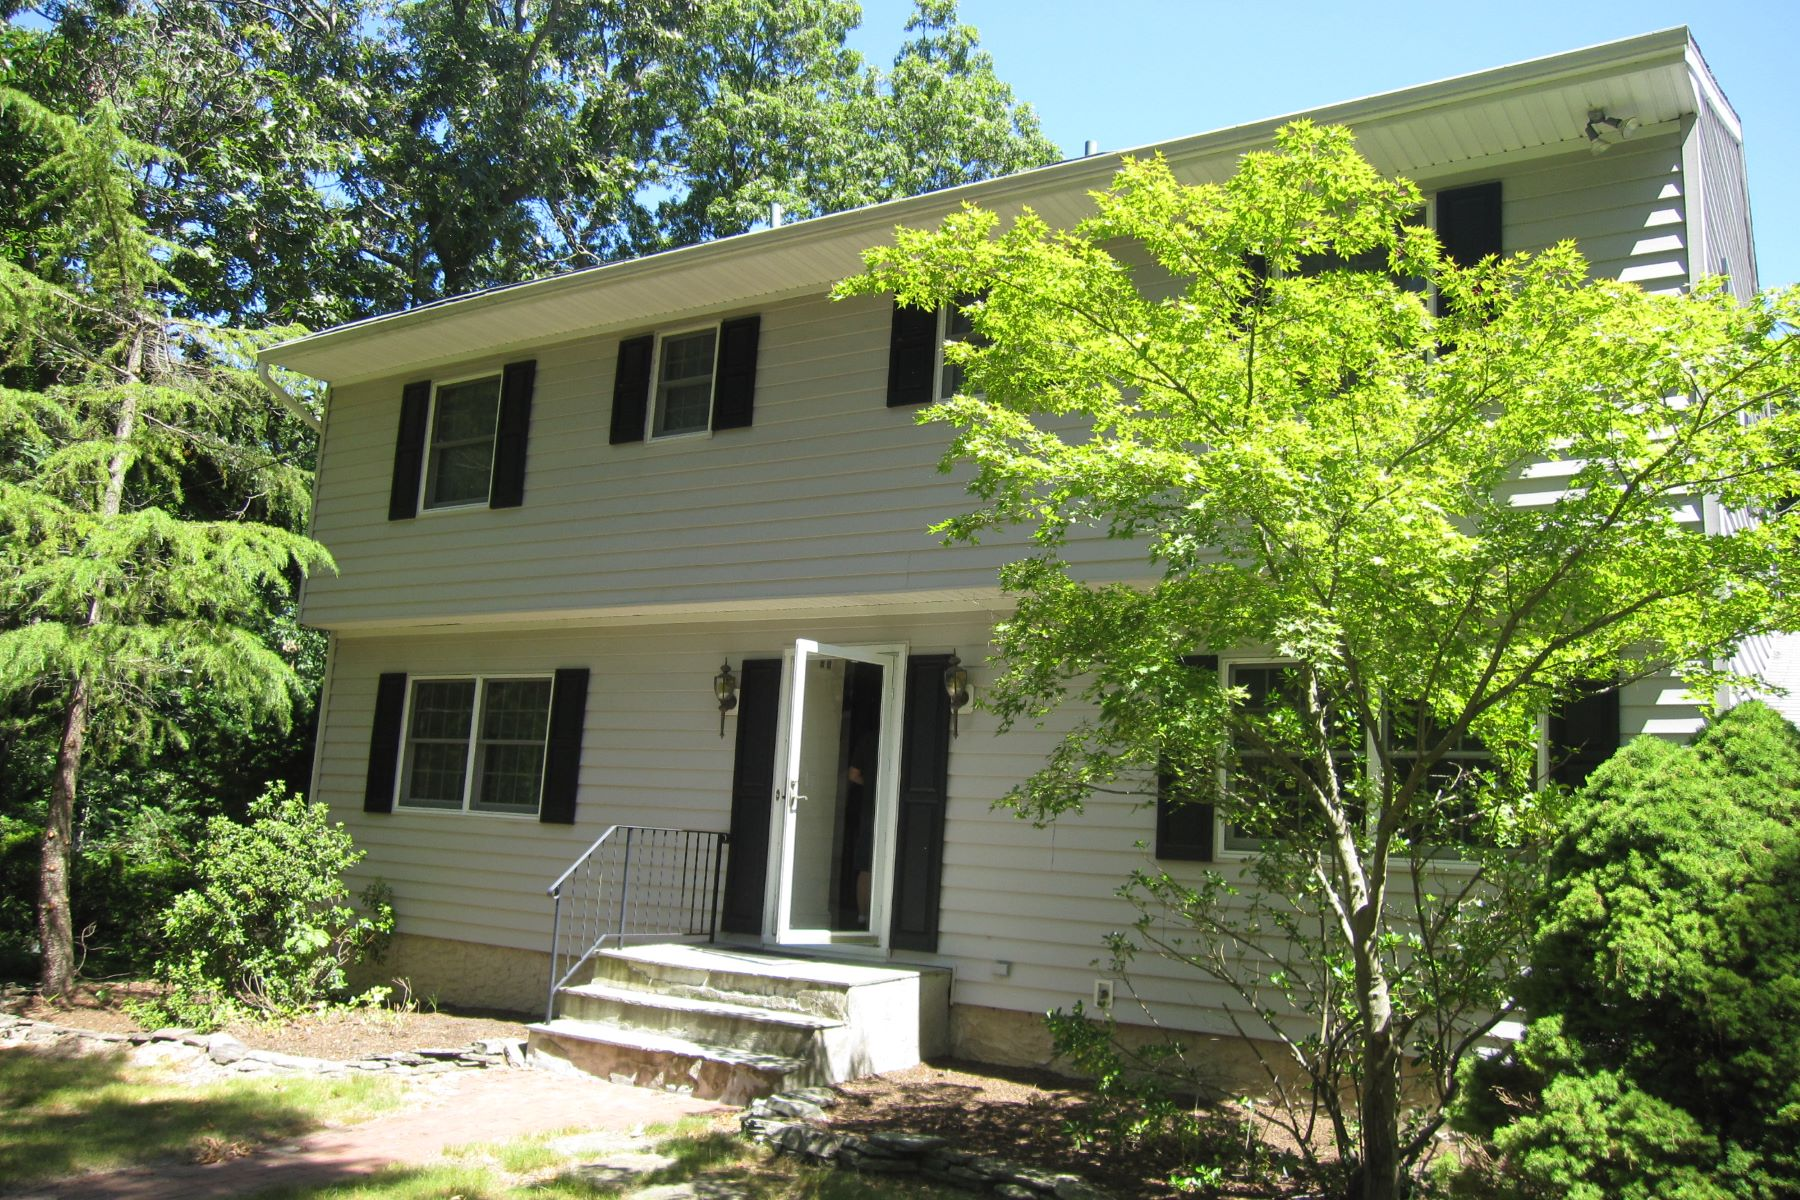 Single Family Home for Sale at Private Beach Community 21 Hillside Rd Stony Brook, New York, 11790 United States